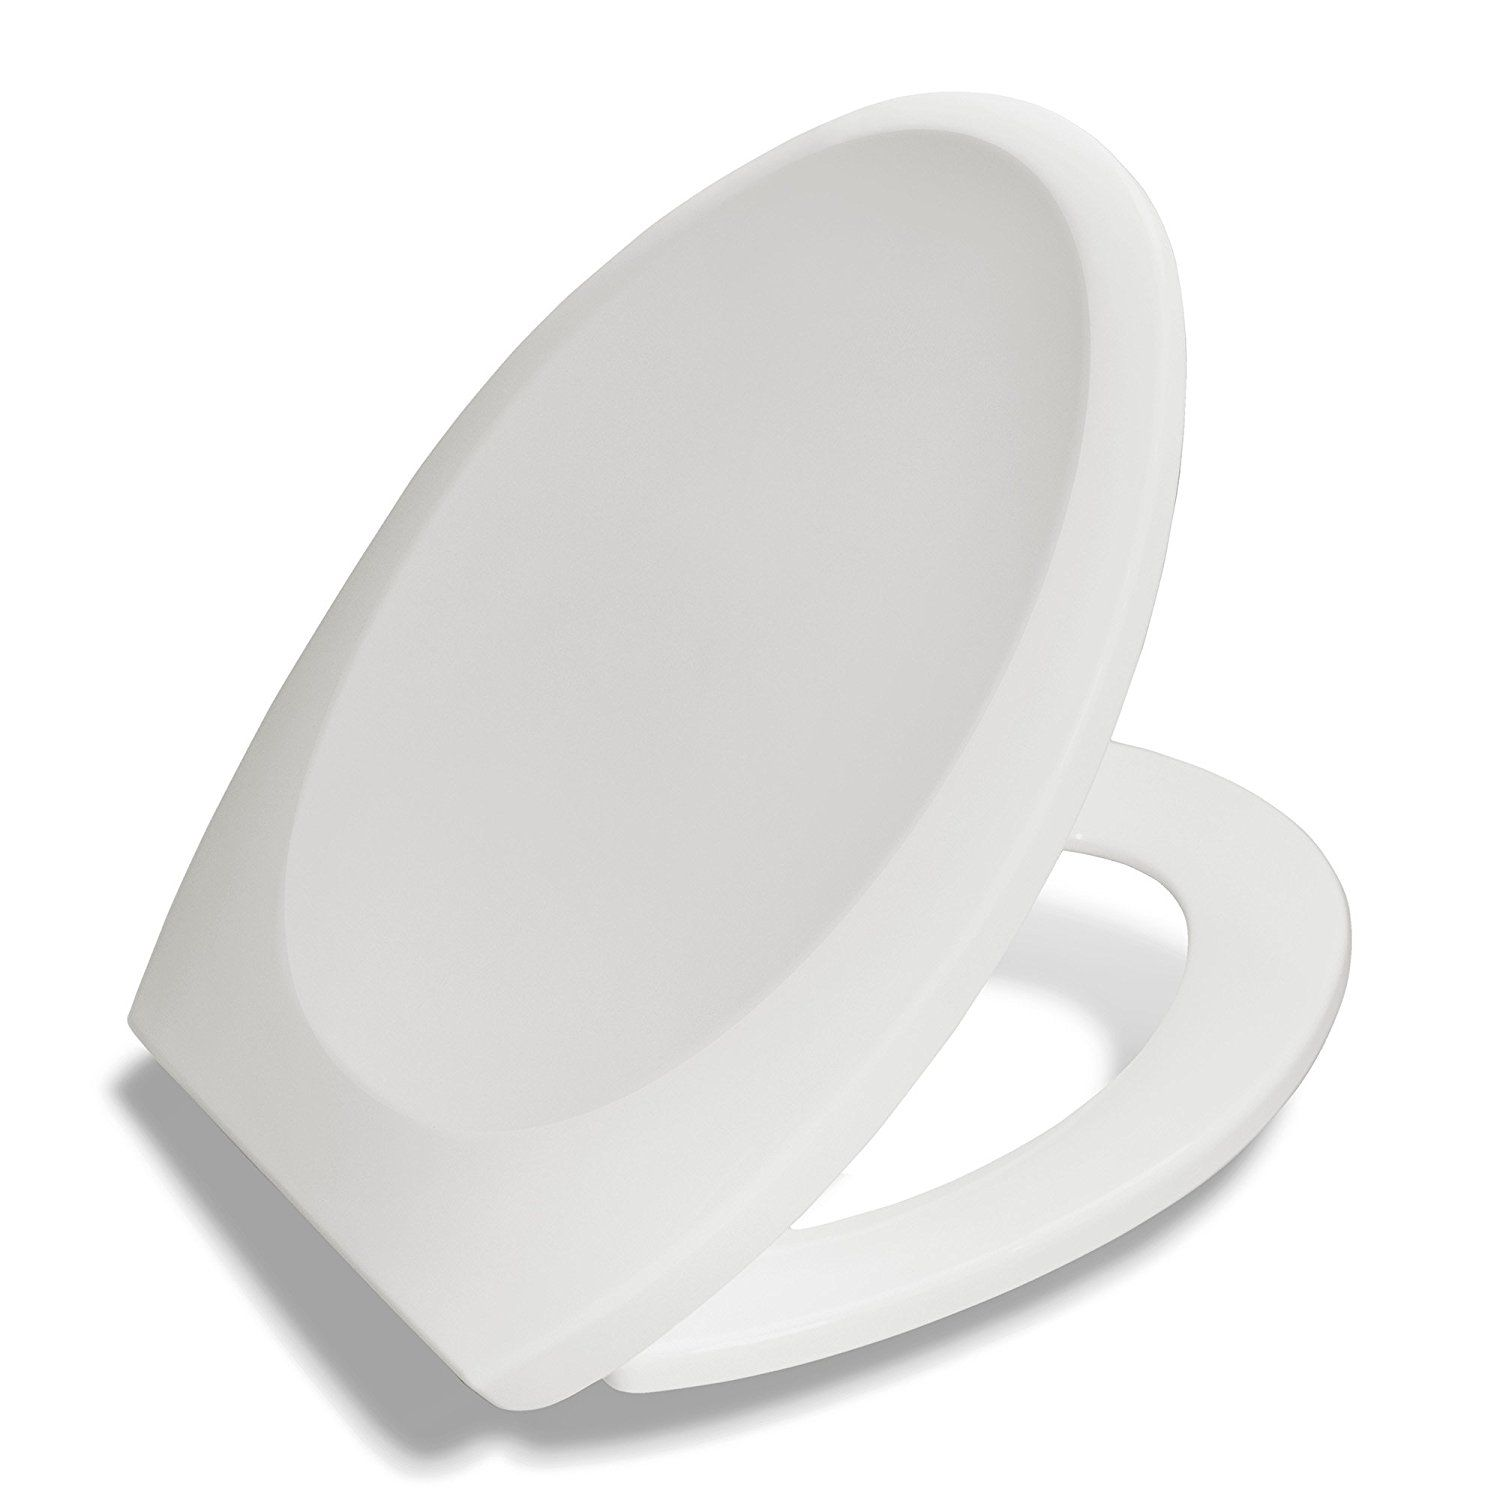 Bath Royale Premium Elongated Toilet Seat With Cover White Slow